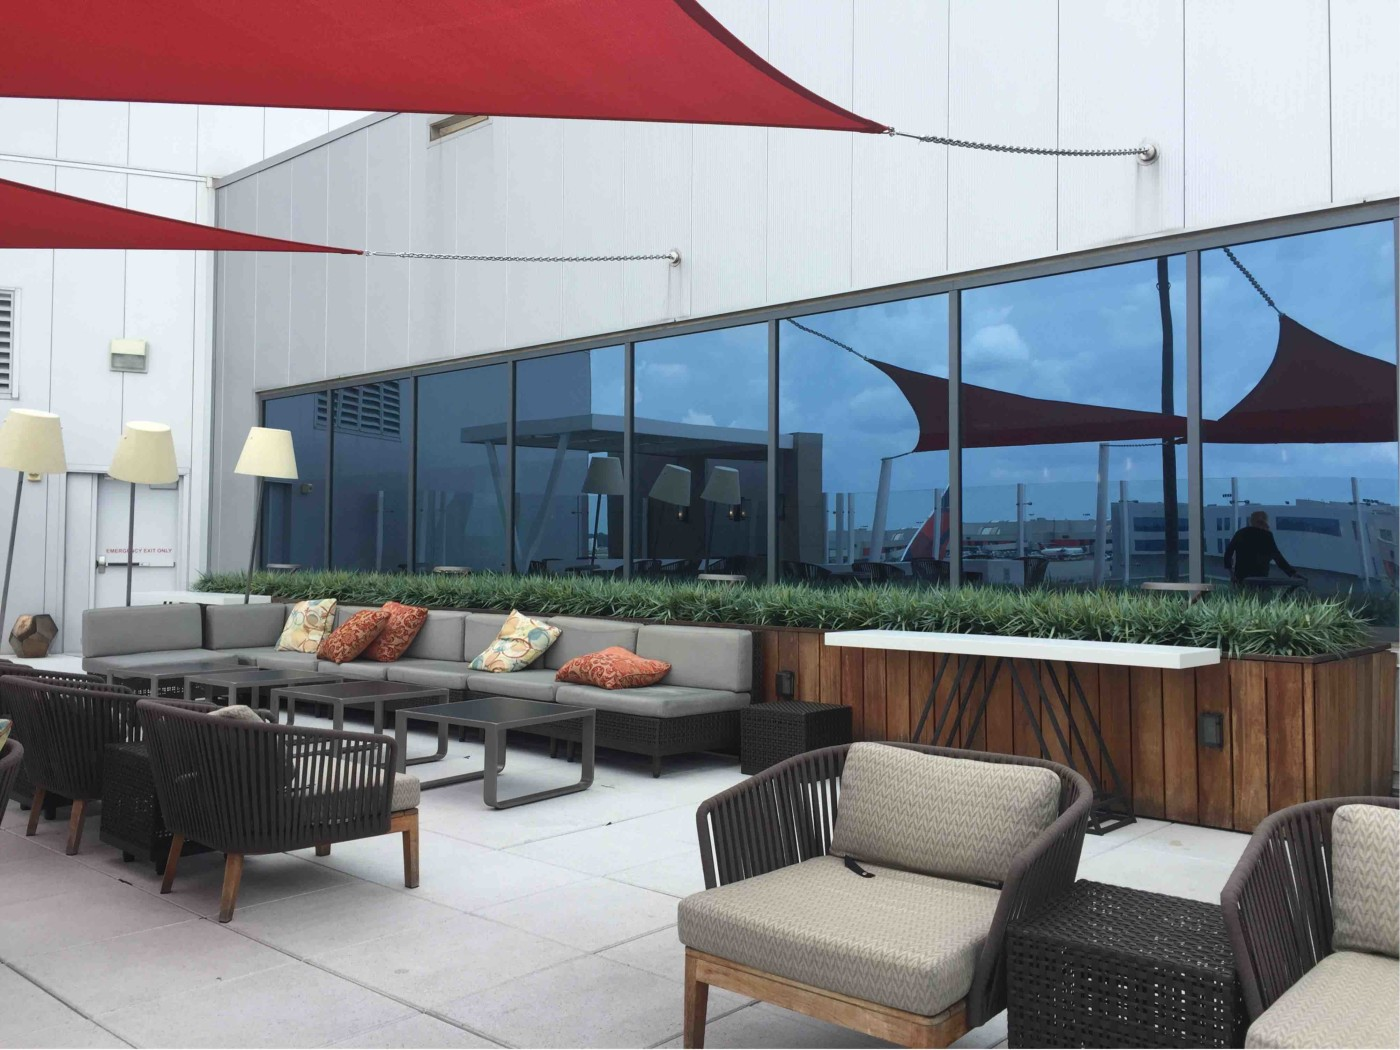 The Ultimate Guide To Delta Sky Club Loungebuddy